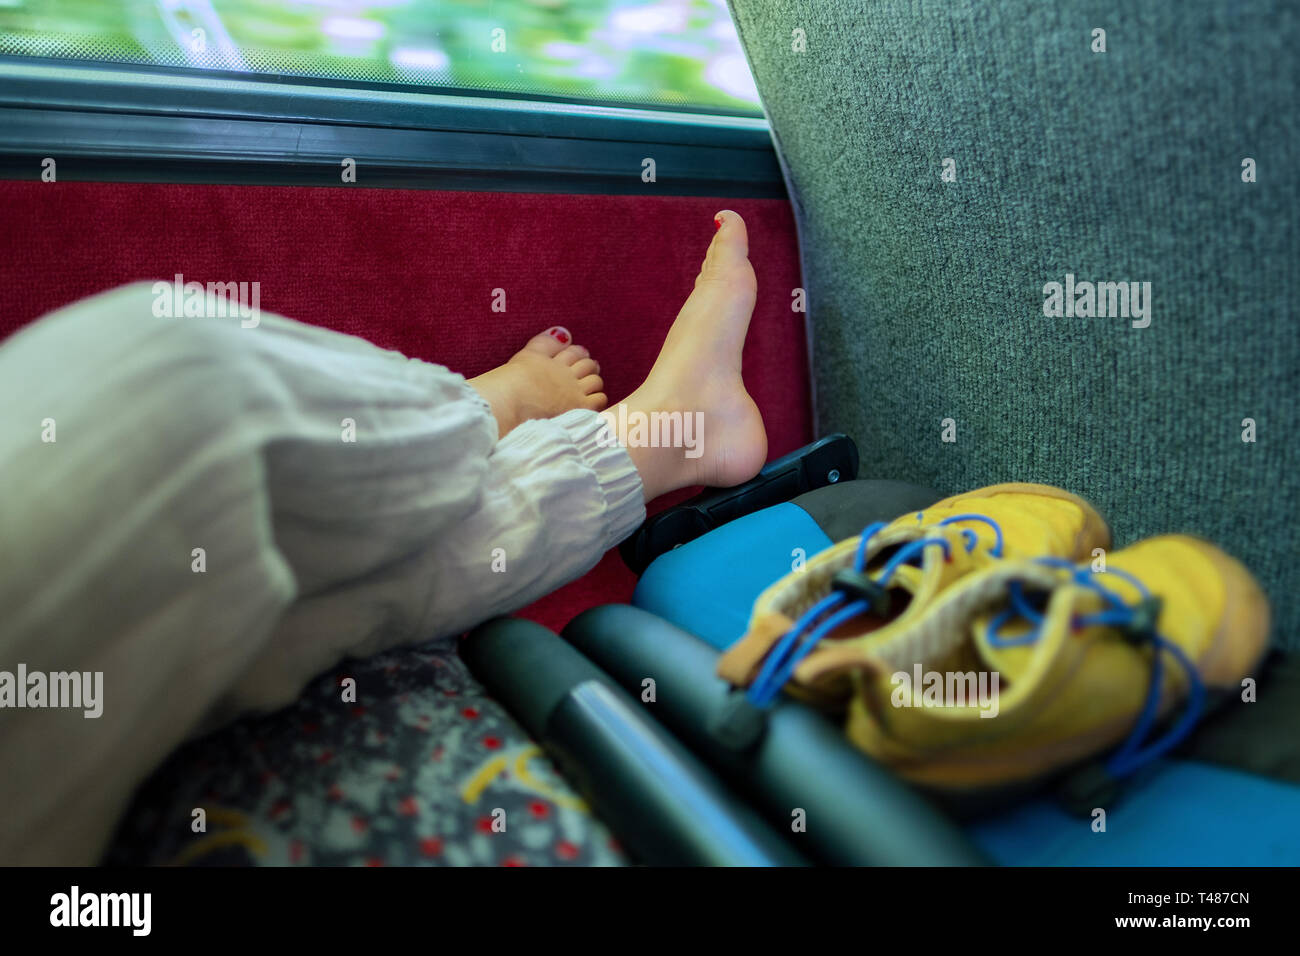 Feet of a yound child who is relaxing in a bus after a long day Stock Photo